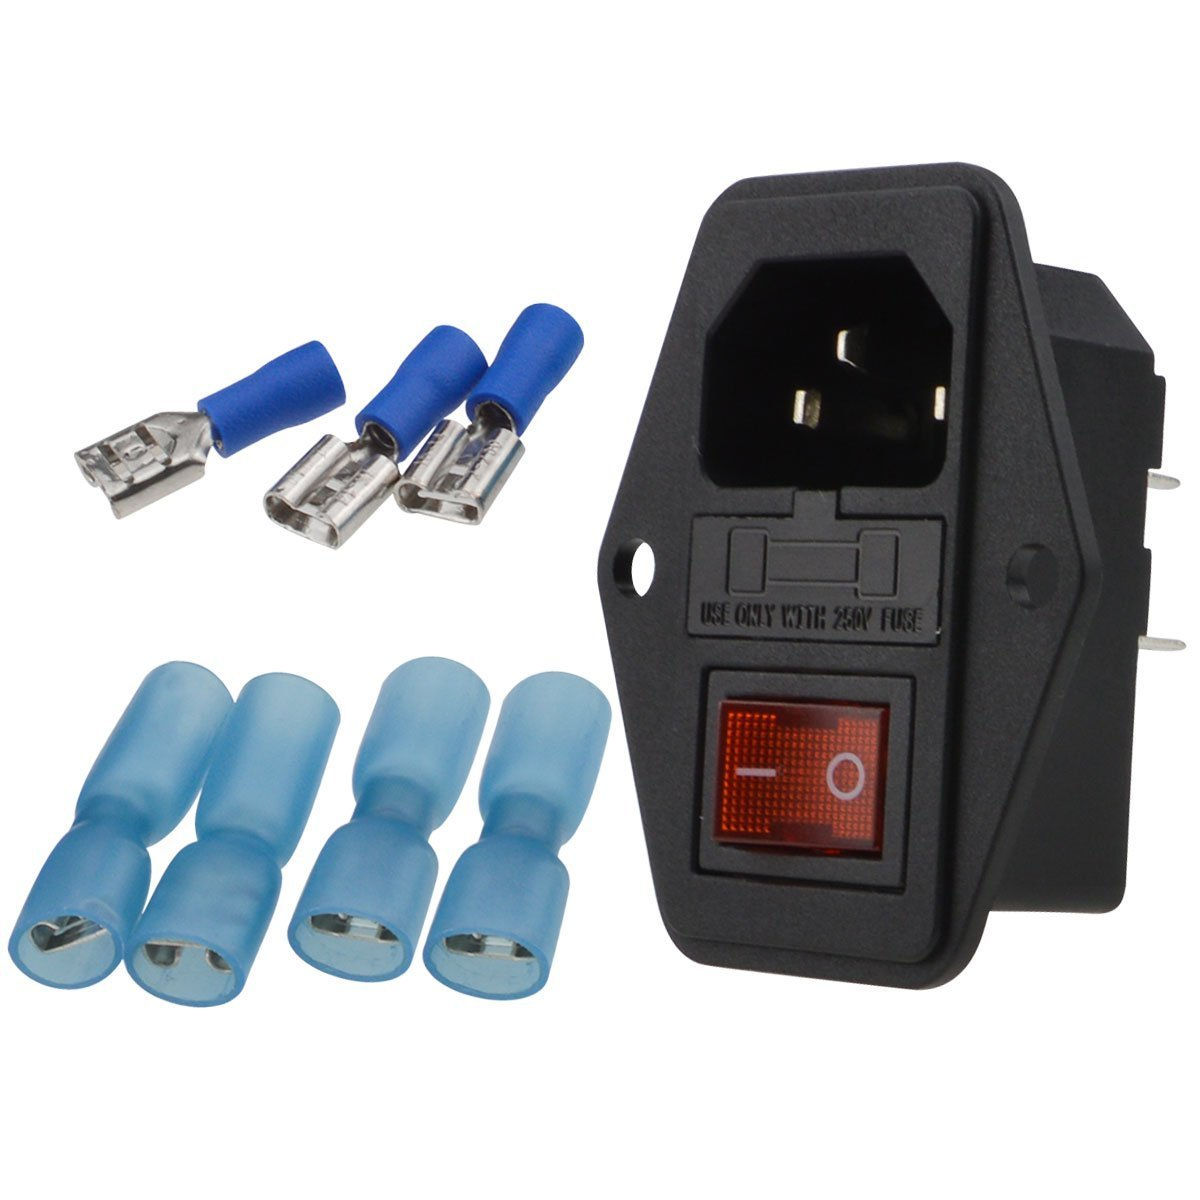 URBEST Male Power Socket 10A 250V Inlet Module Plug 5A Fuse Switch with 7Pcs Female 16-14 AWG Wiring Spade Crimp Terminals S20180705